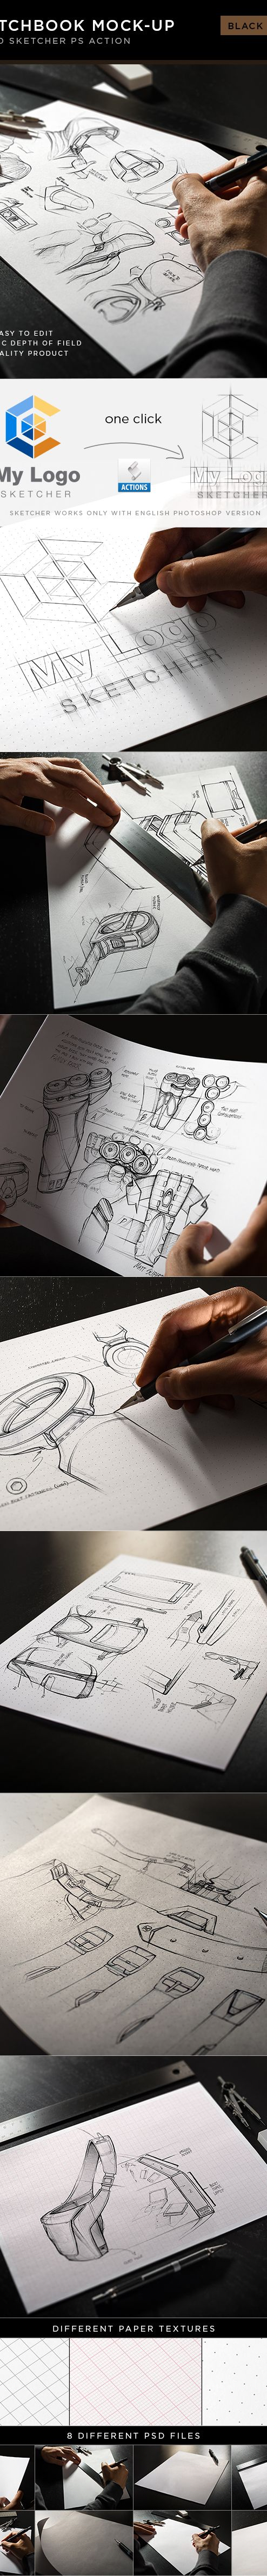 Sketchbook Mock-Up / Black Edition by Andrej Sevkovskij, via Behance